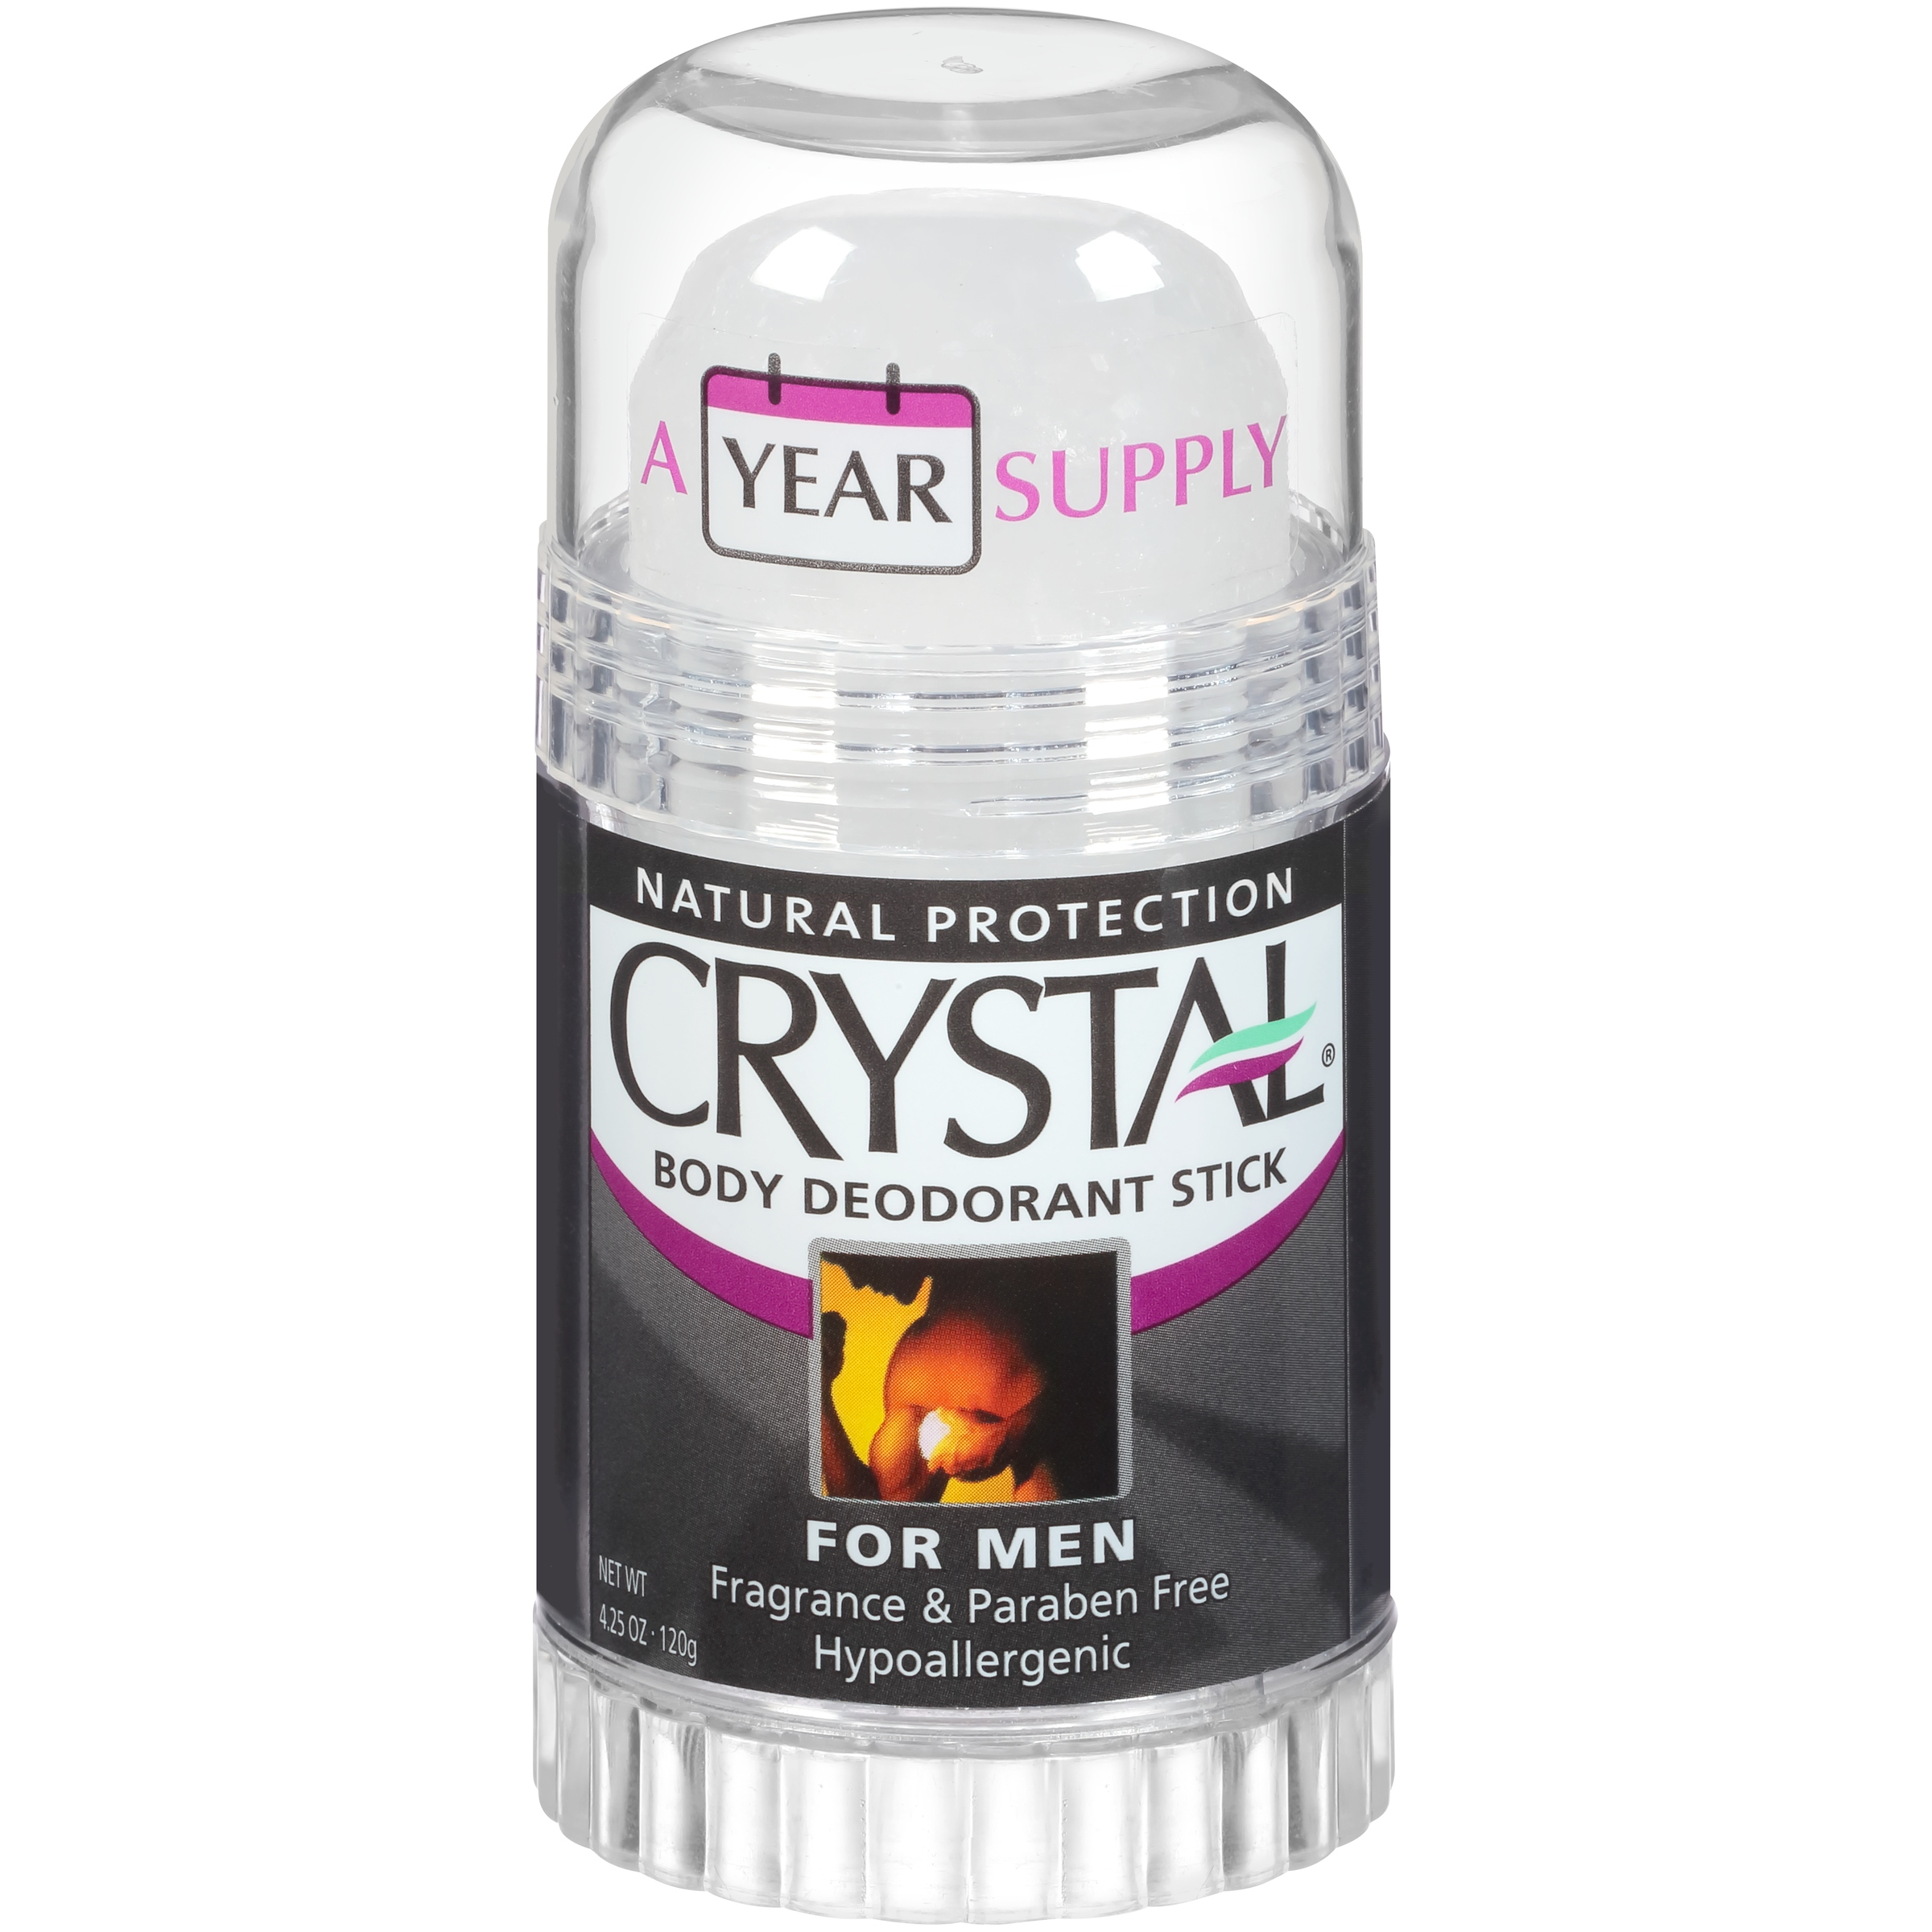 Crystal® Body Deodorant Stick for Men 4.25 oz. Stick